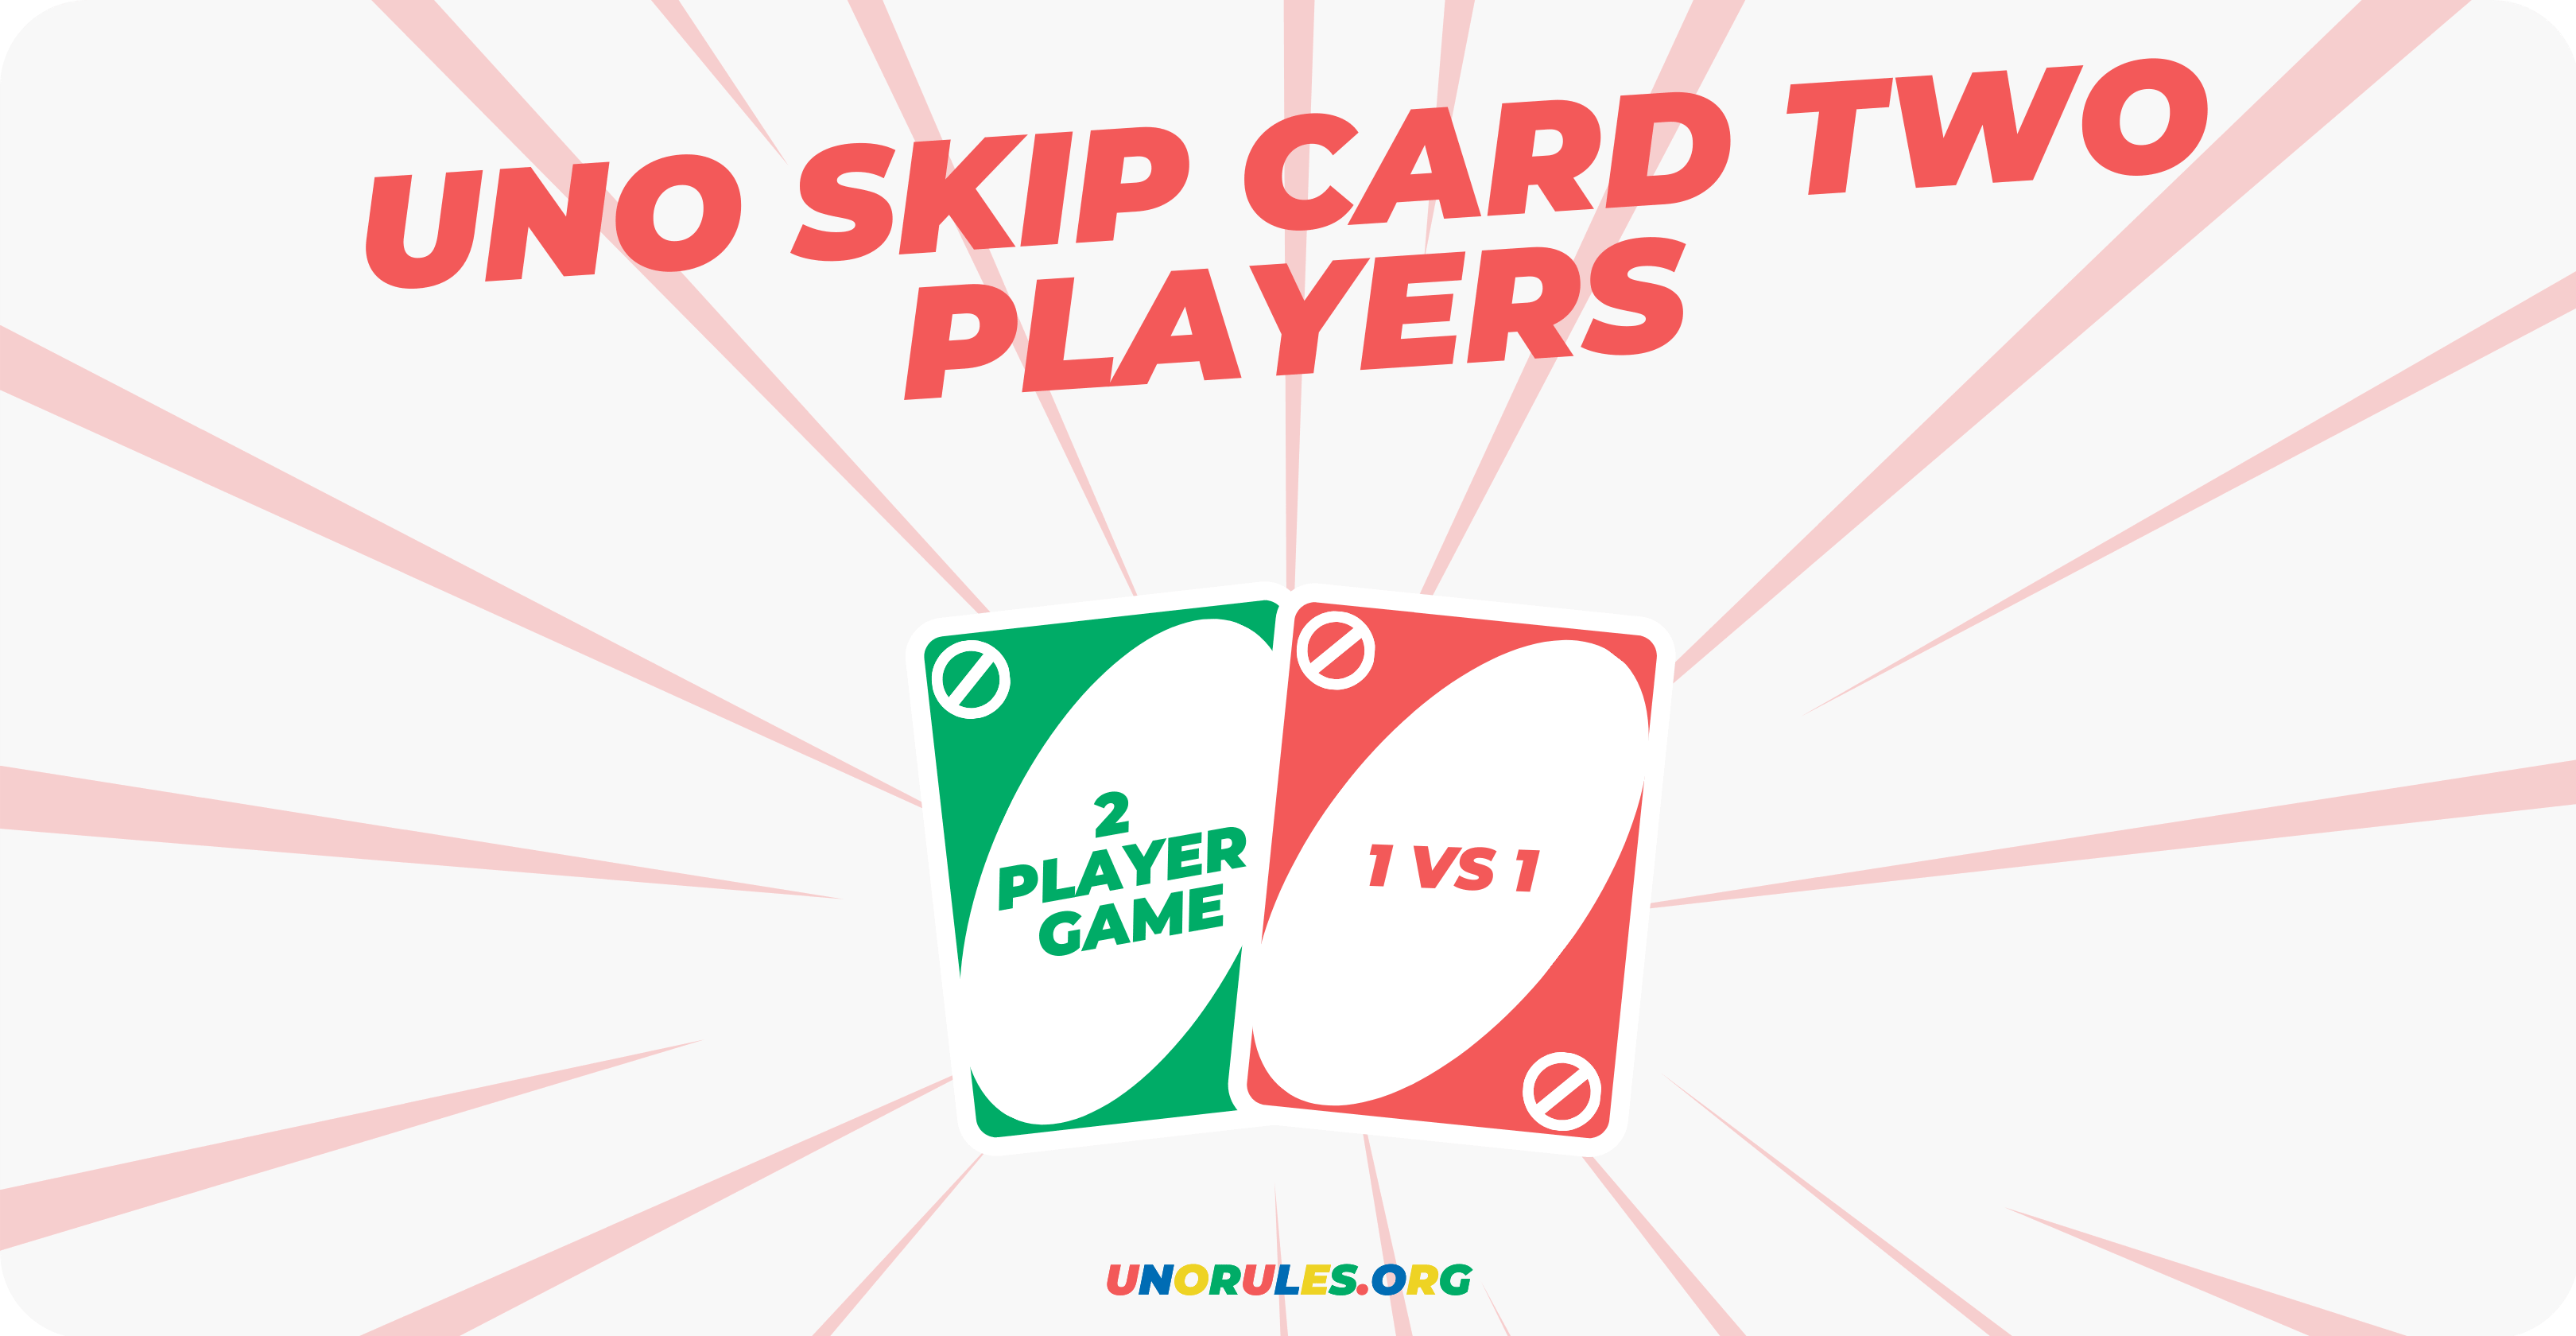 Uno skip card two players